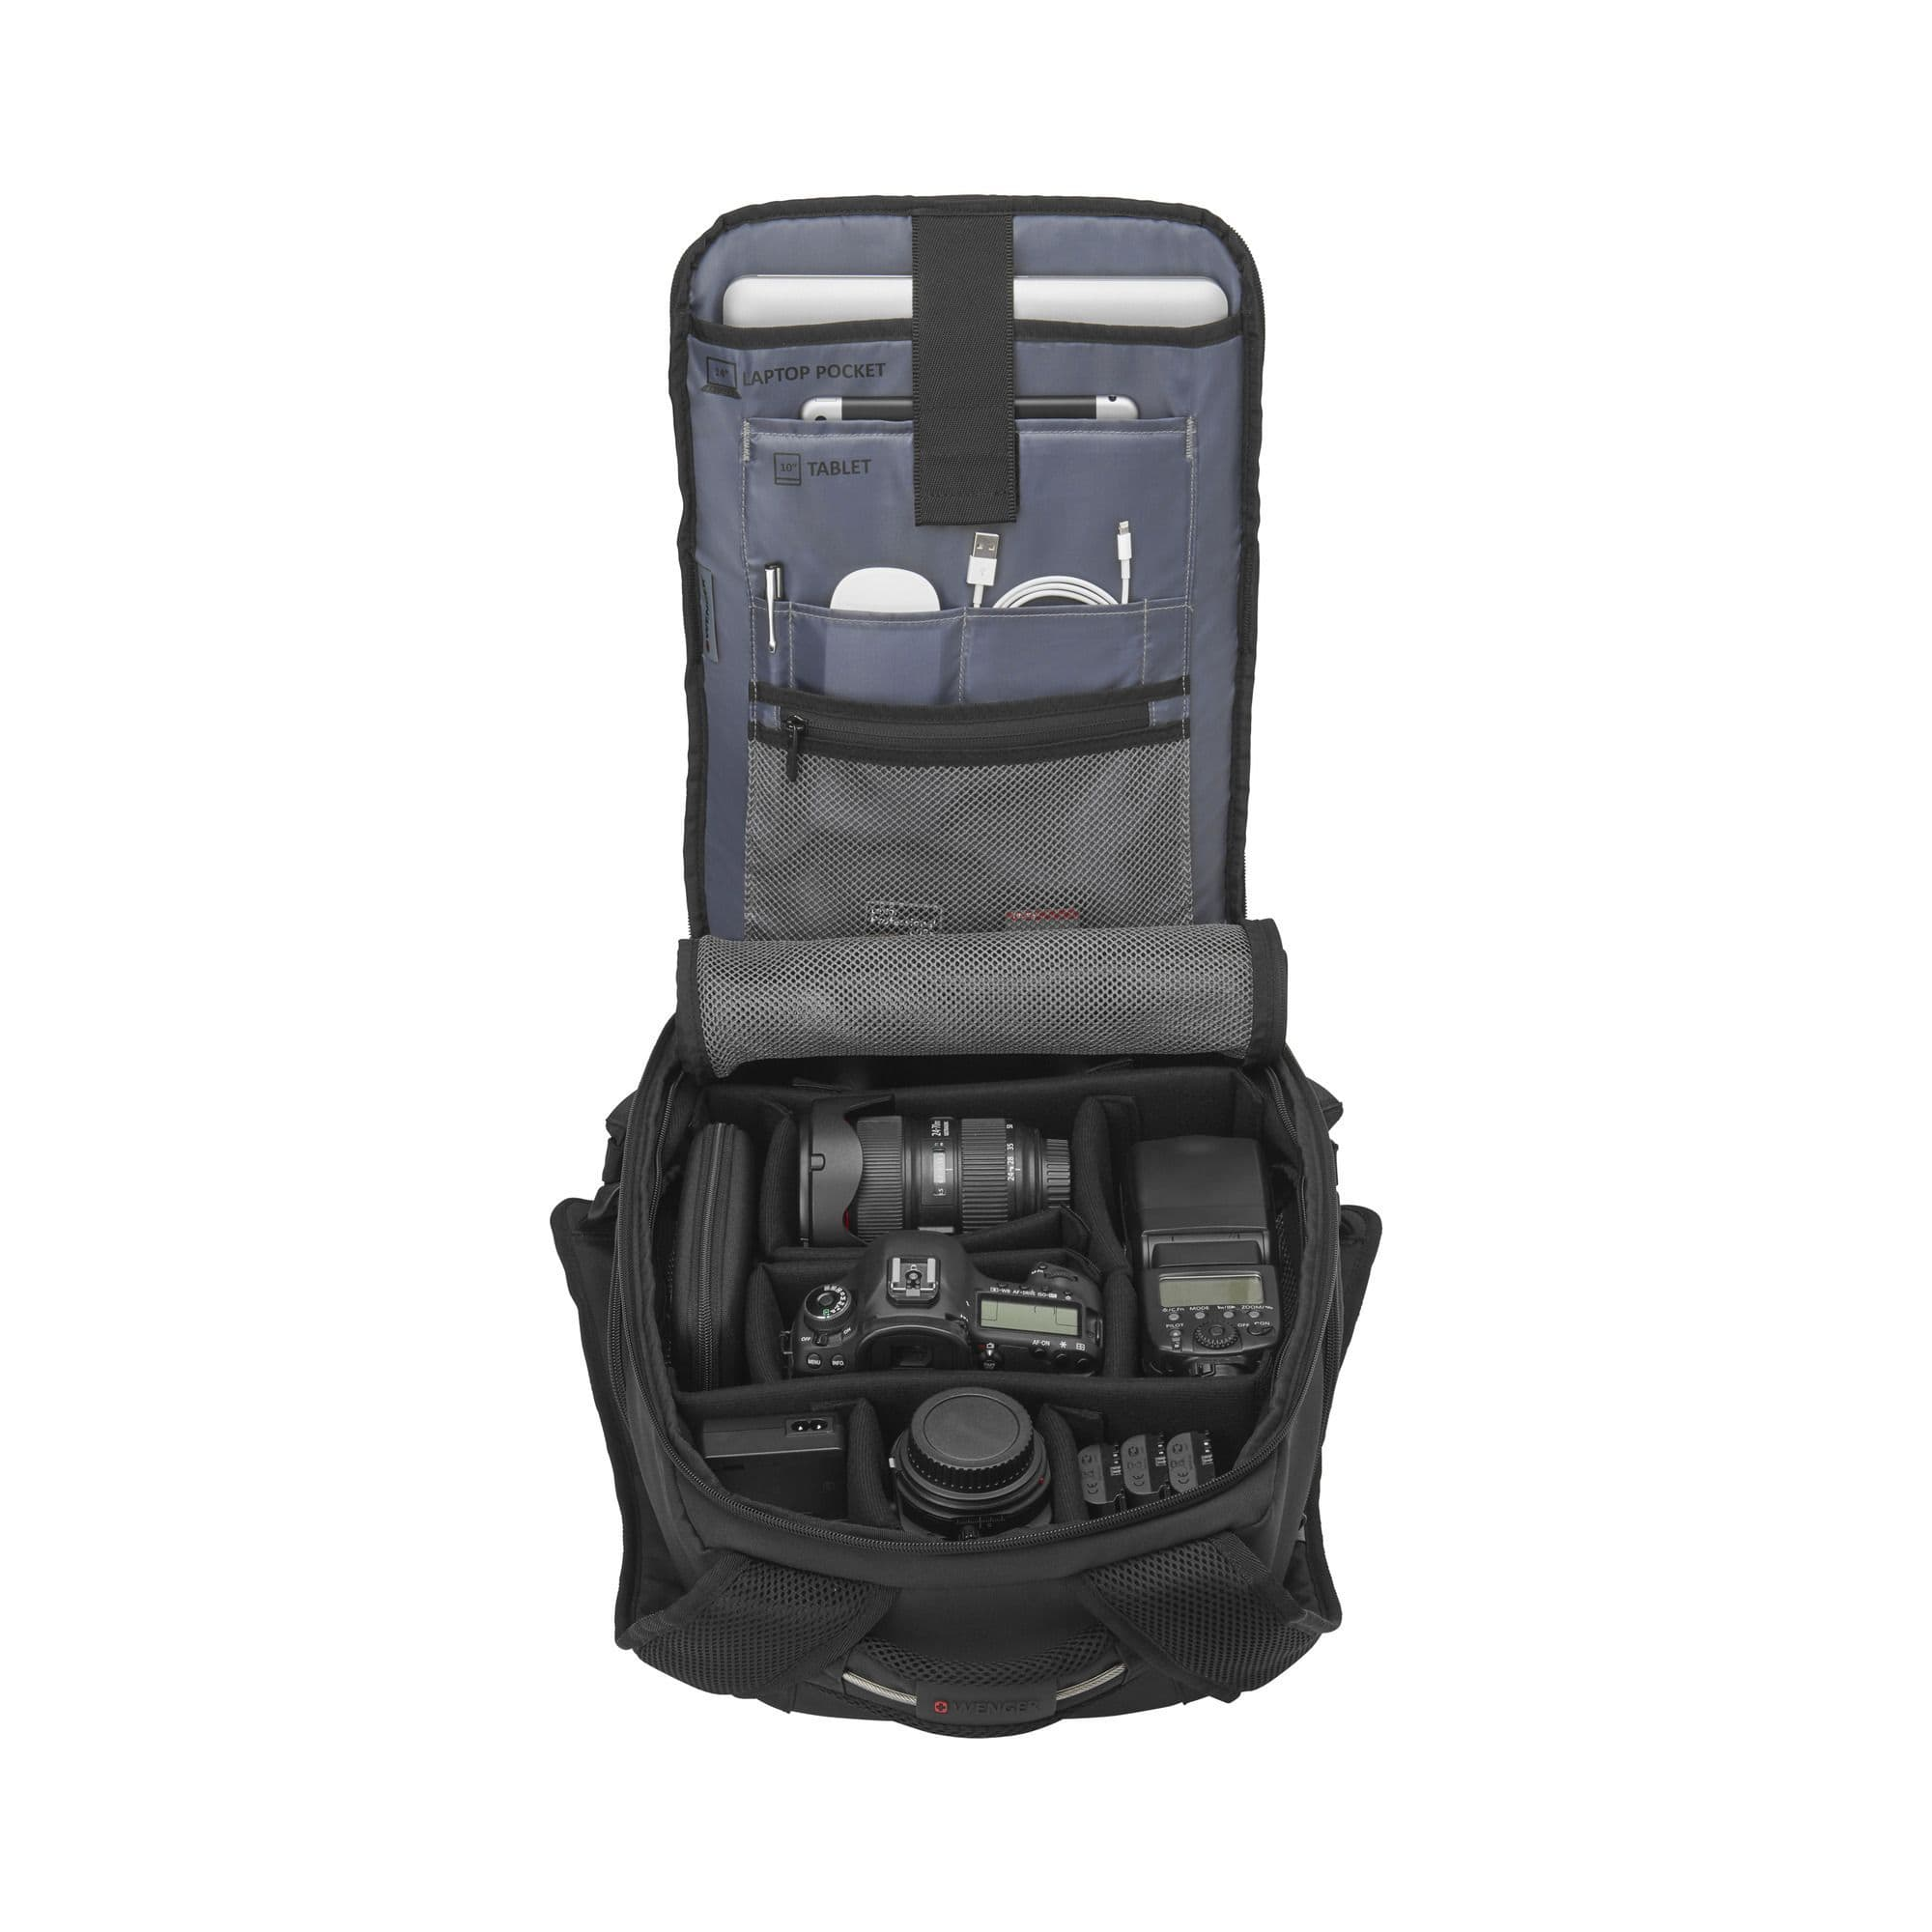 WEEKEND LIFESTYLE TECHPACK CAMERA BACKPACK